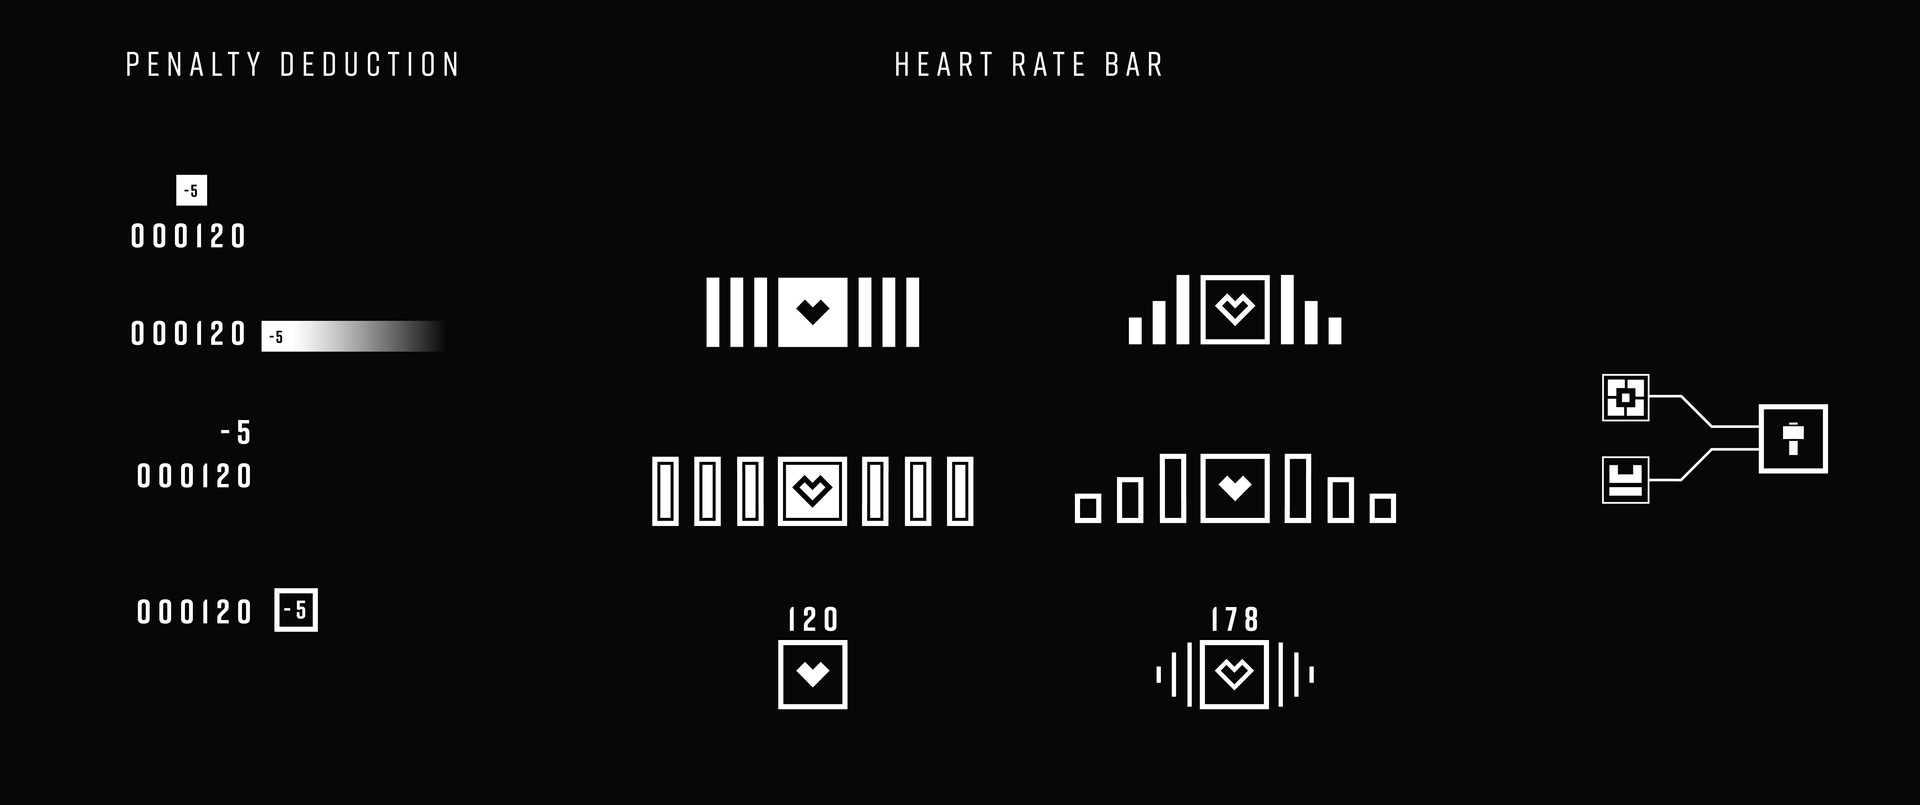 HEART RATE BAR